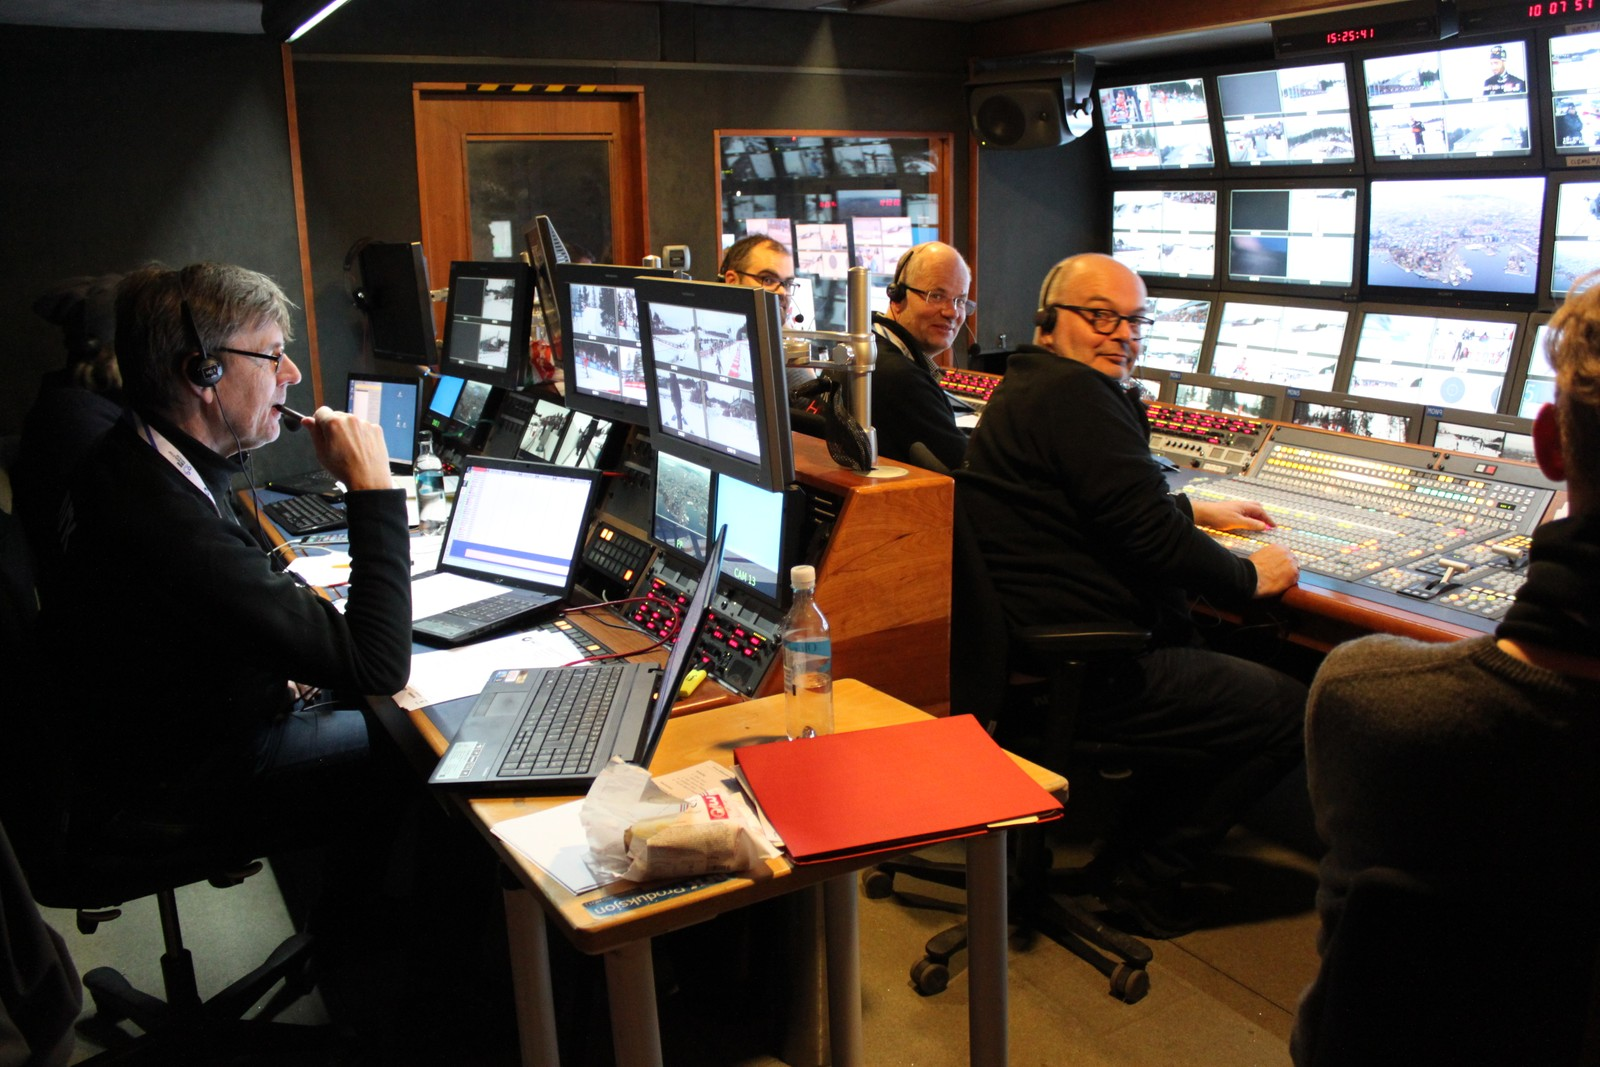 Inside the NRK Host Broadcaster production unit.